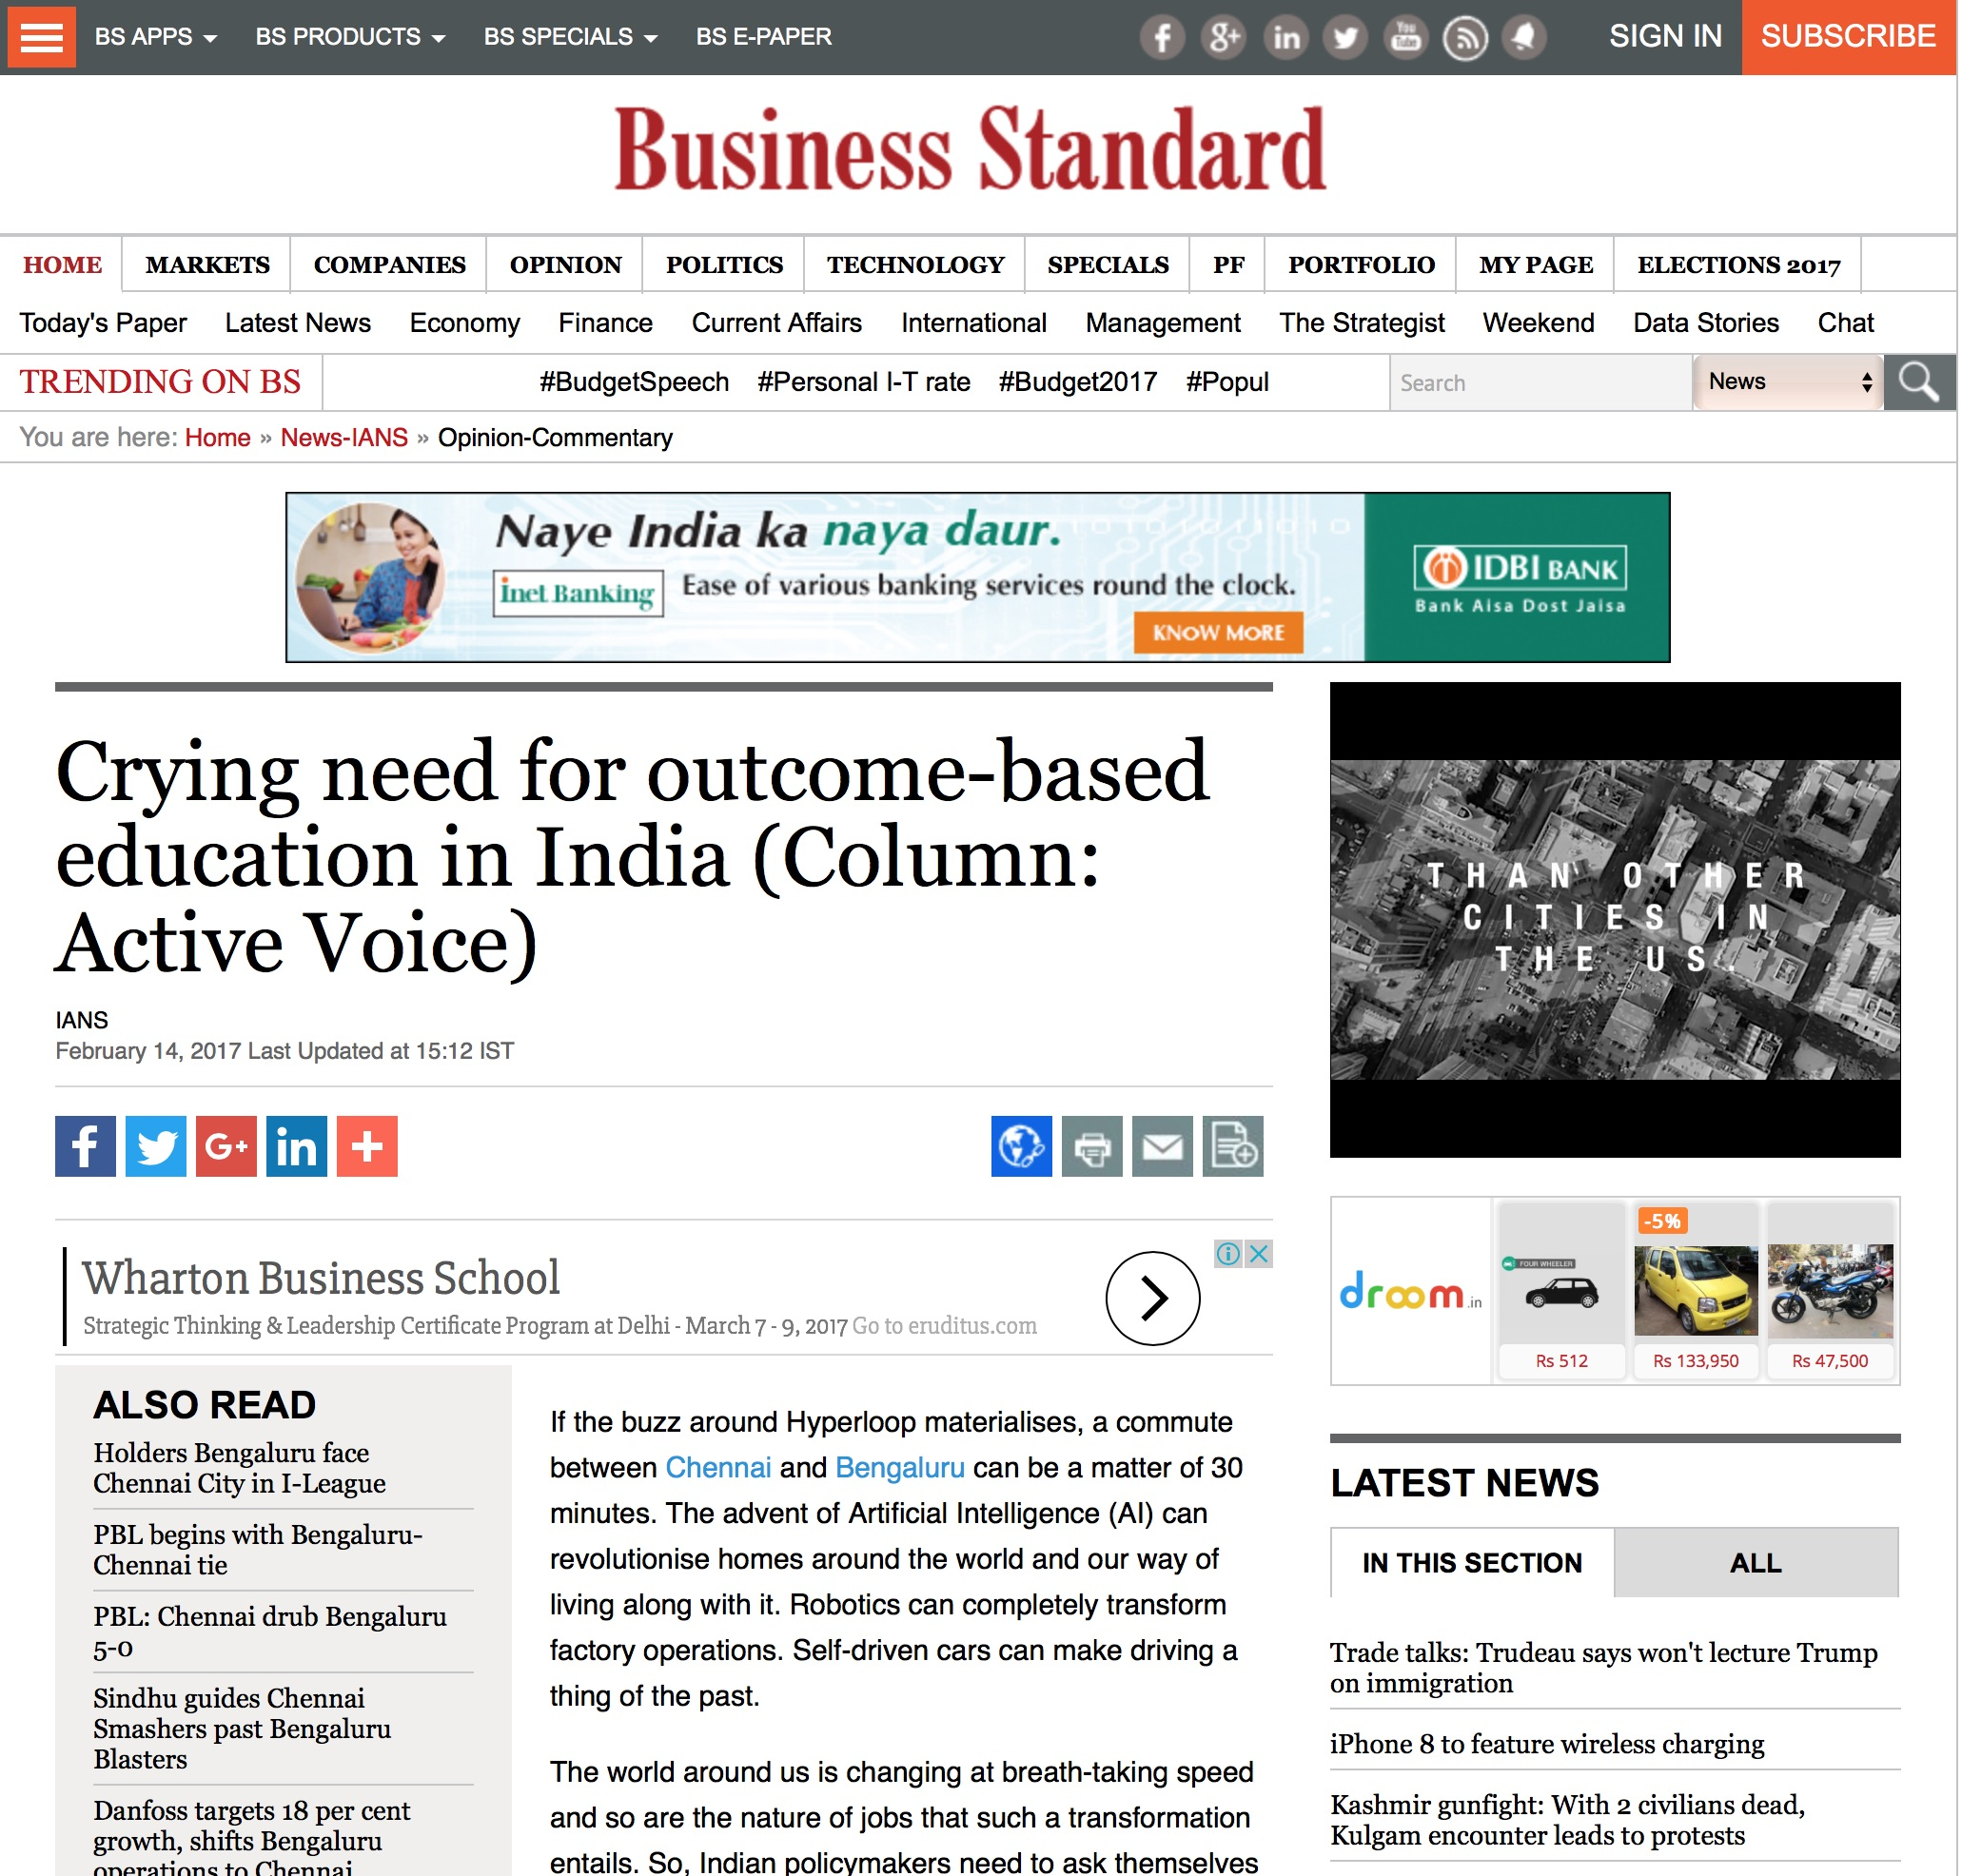 Category/education - Crying Need For Outcome Based Education In India